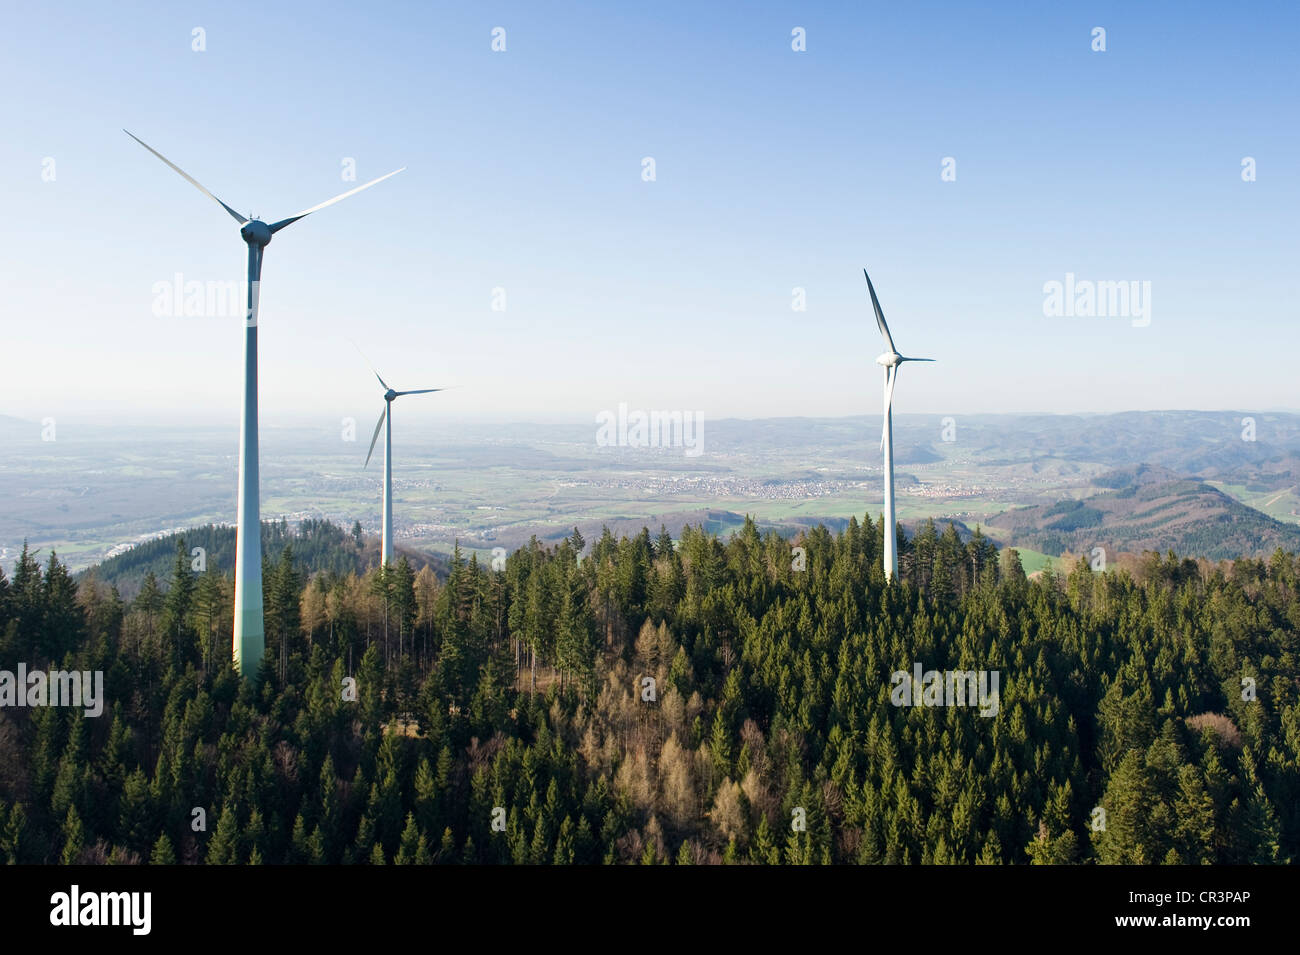 aerial view wind turbines on rosskopf mountain freiburg im stock photo royalty free image. Black Bedroom Furniture Sets. Home Design Ideas